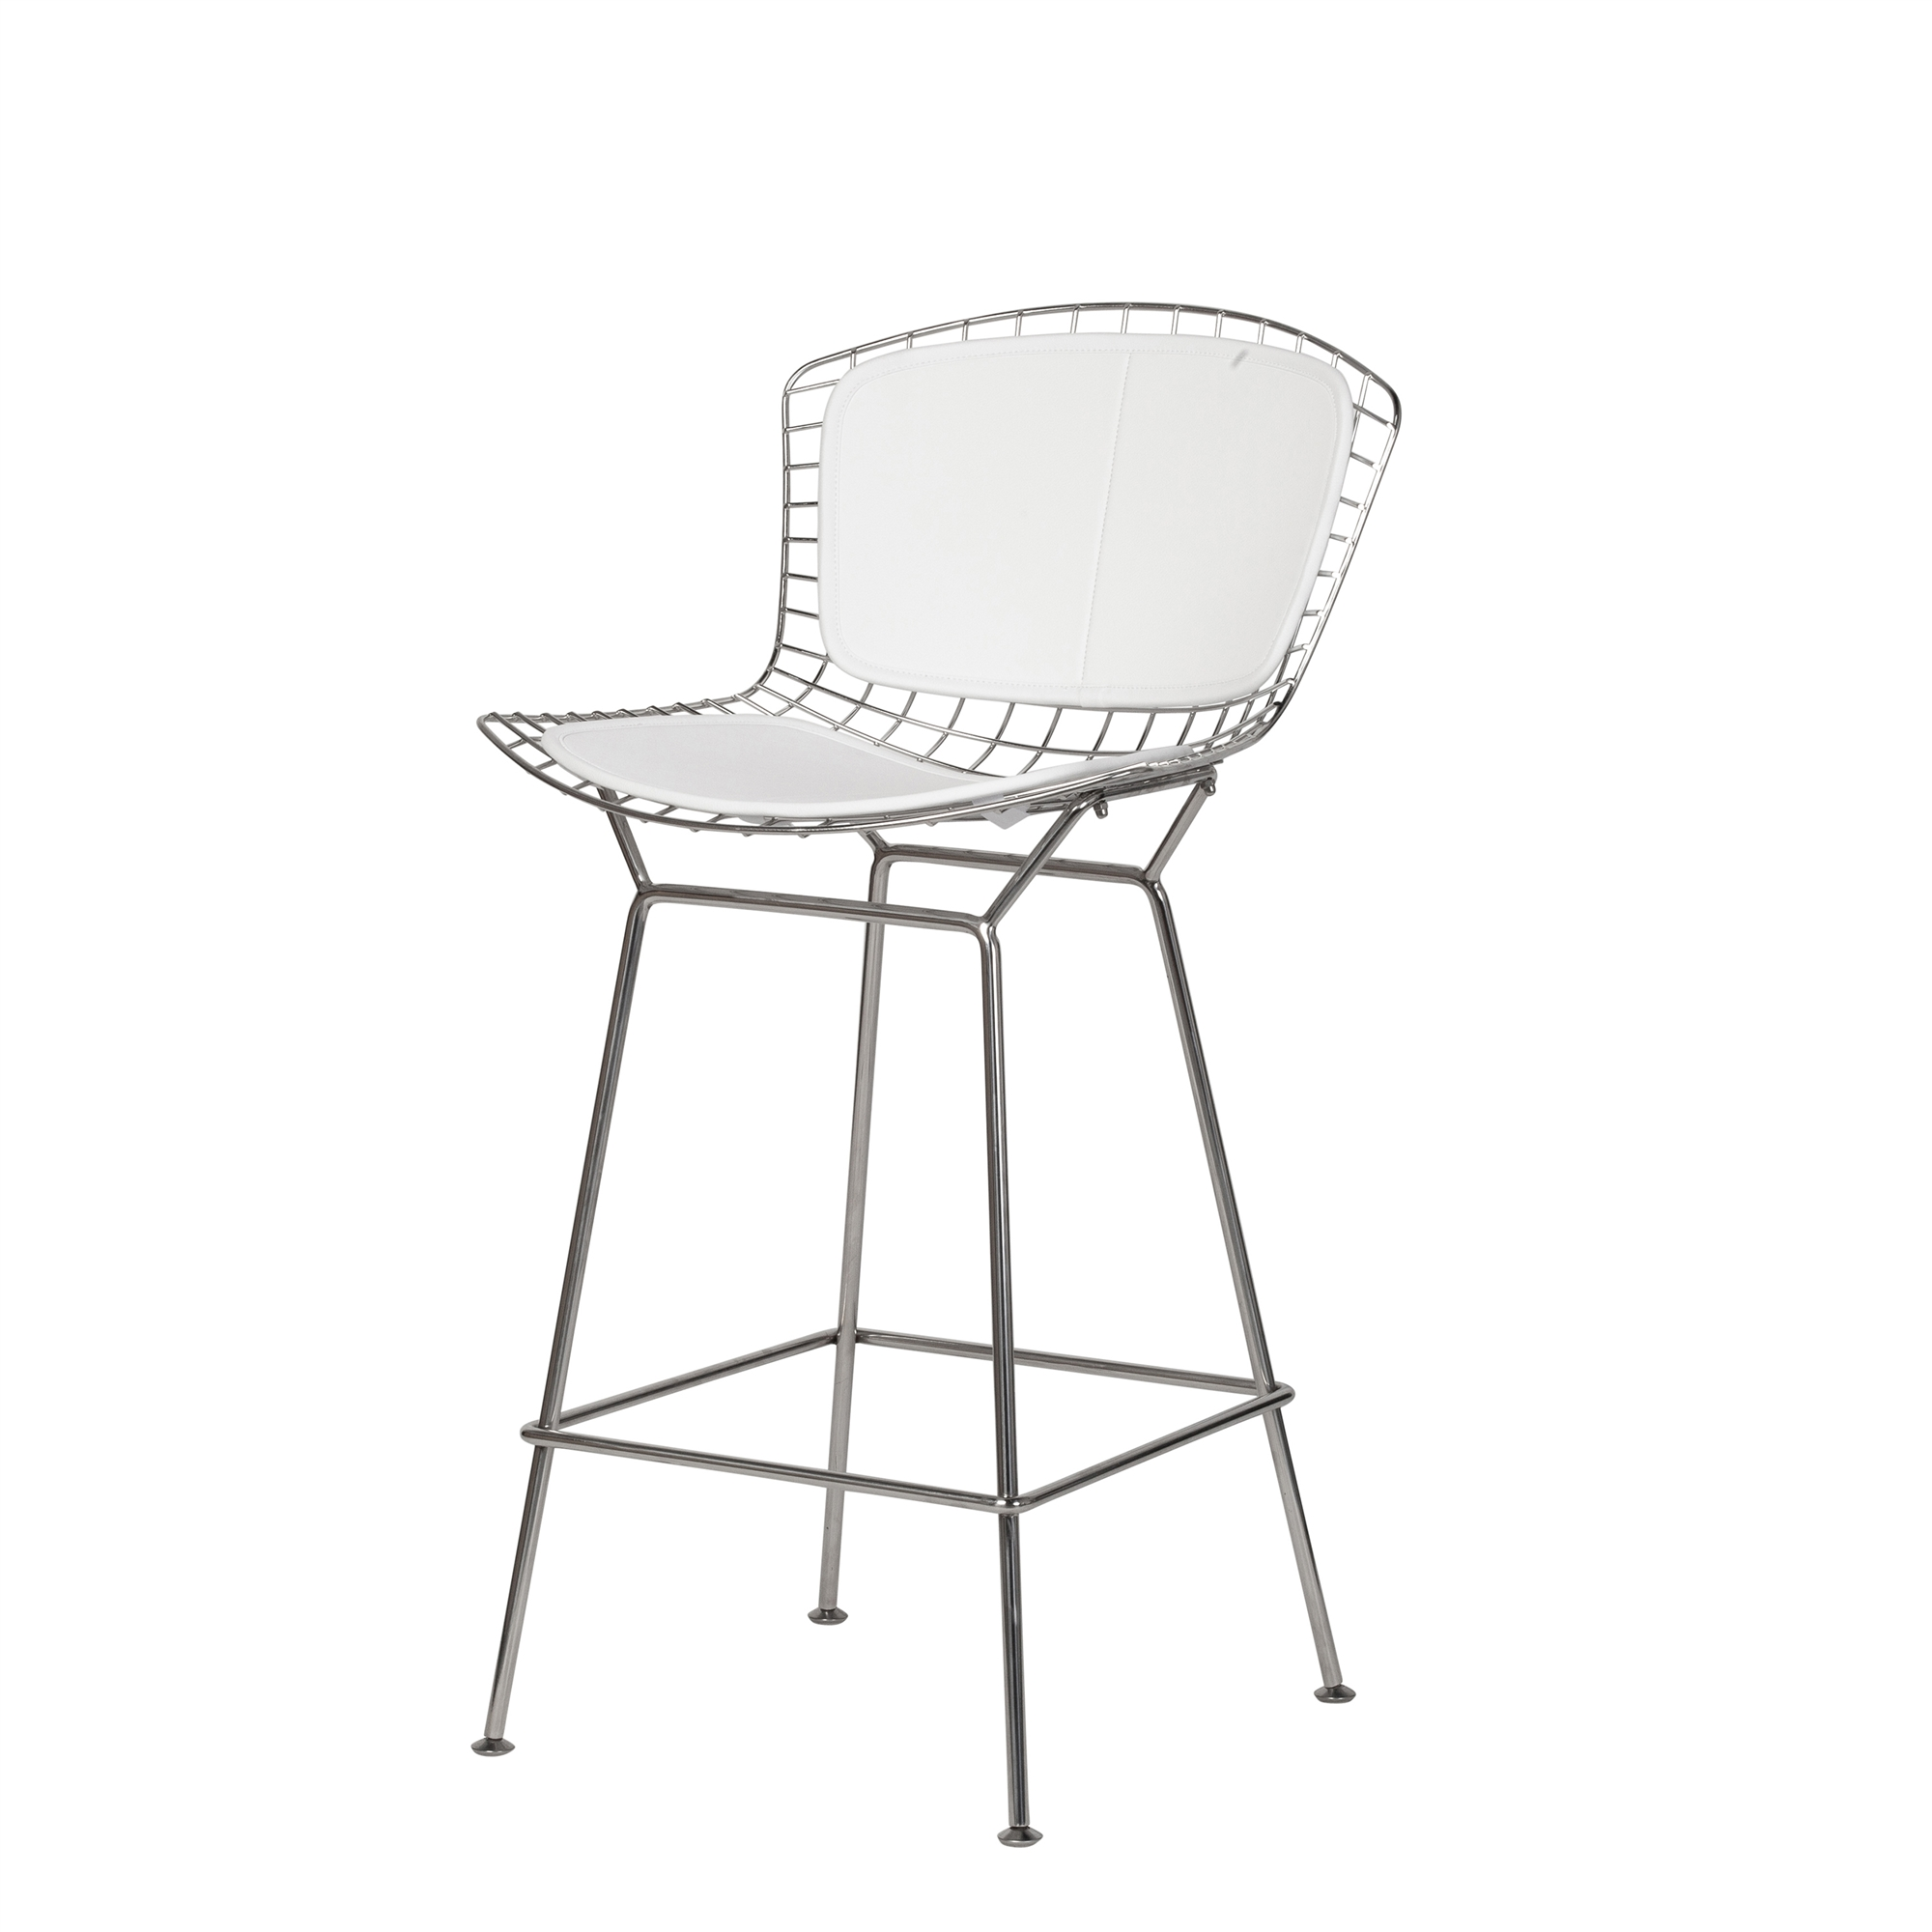 Terrific Bertoia Style Stainless Steel Counter Stool White Seat Pad Ocoug Best Dining Table And Chair Ideas Images Ocougorg